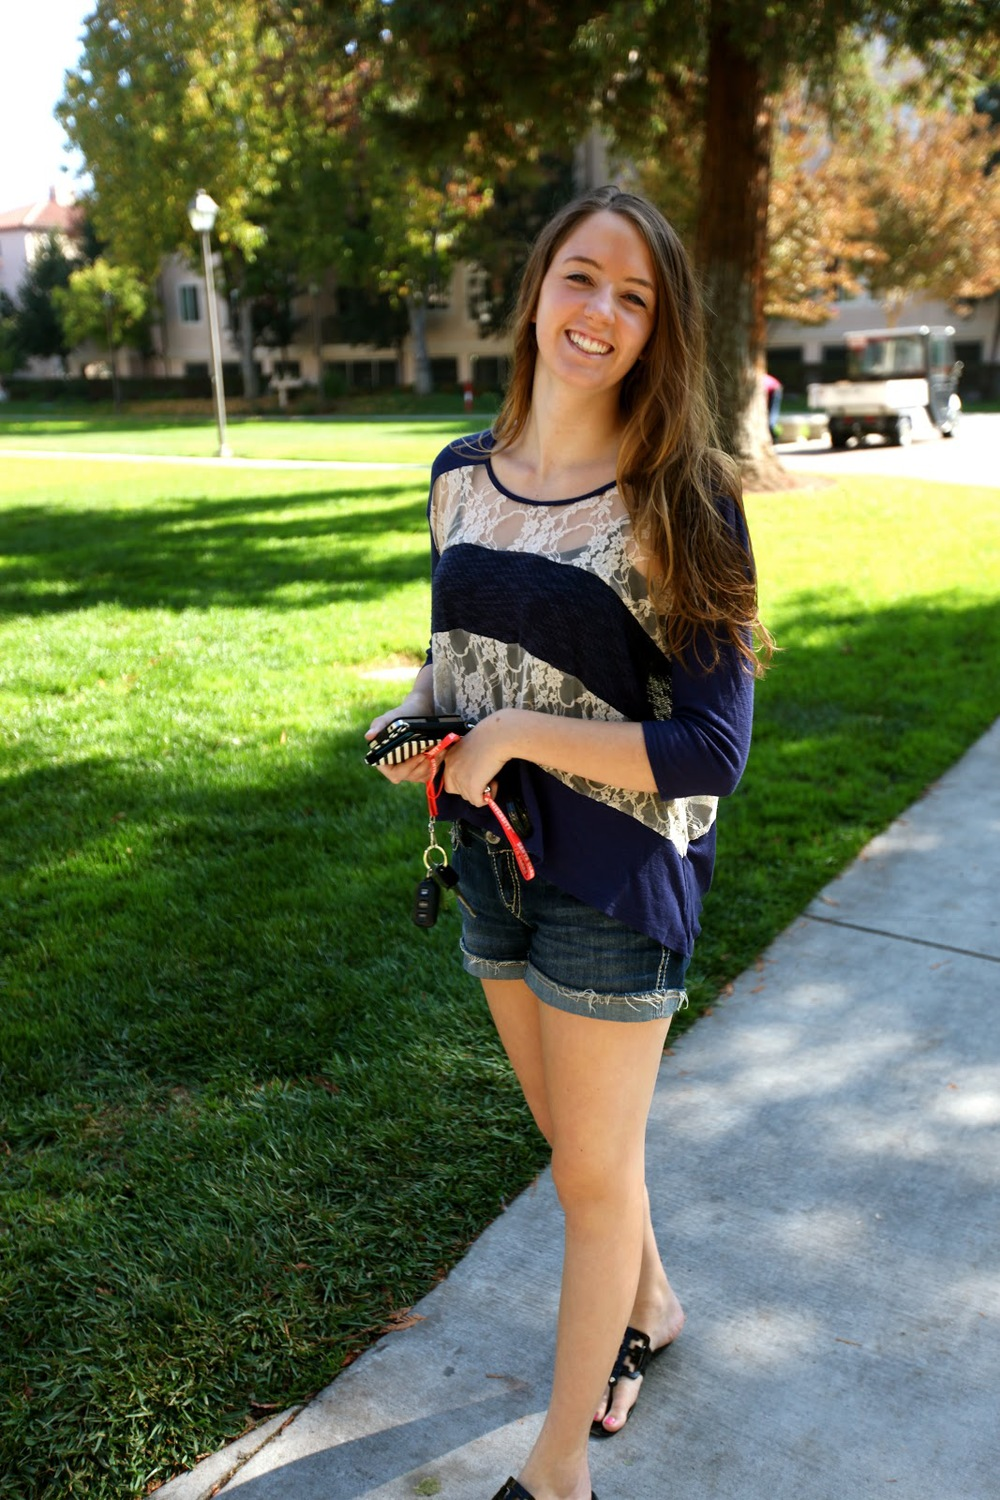 Amy Grills, Santa Clara University student wears a mixed fabric top made of lace and blue solid pieces with jean shorts jorts and black sandals